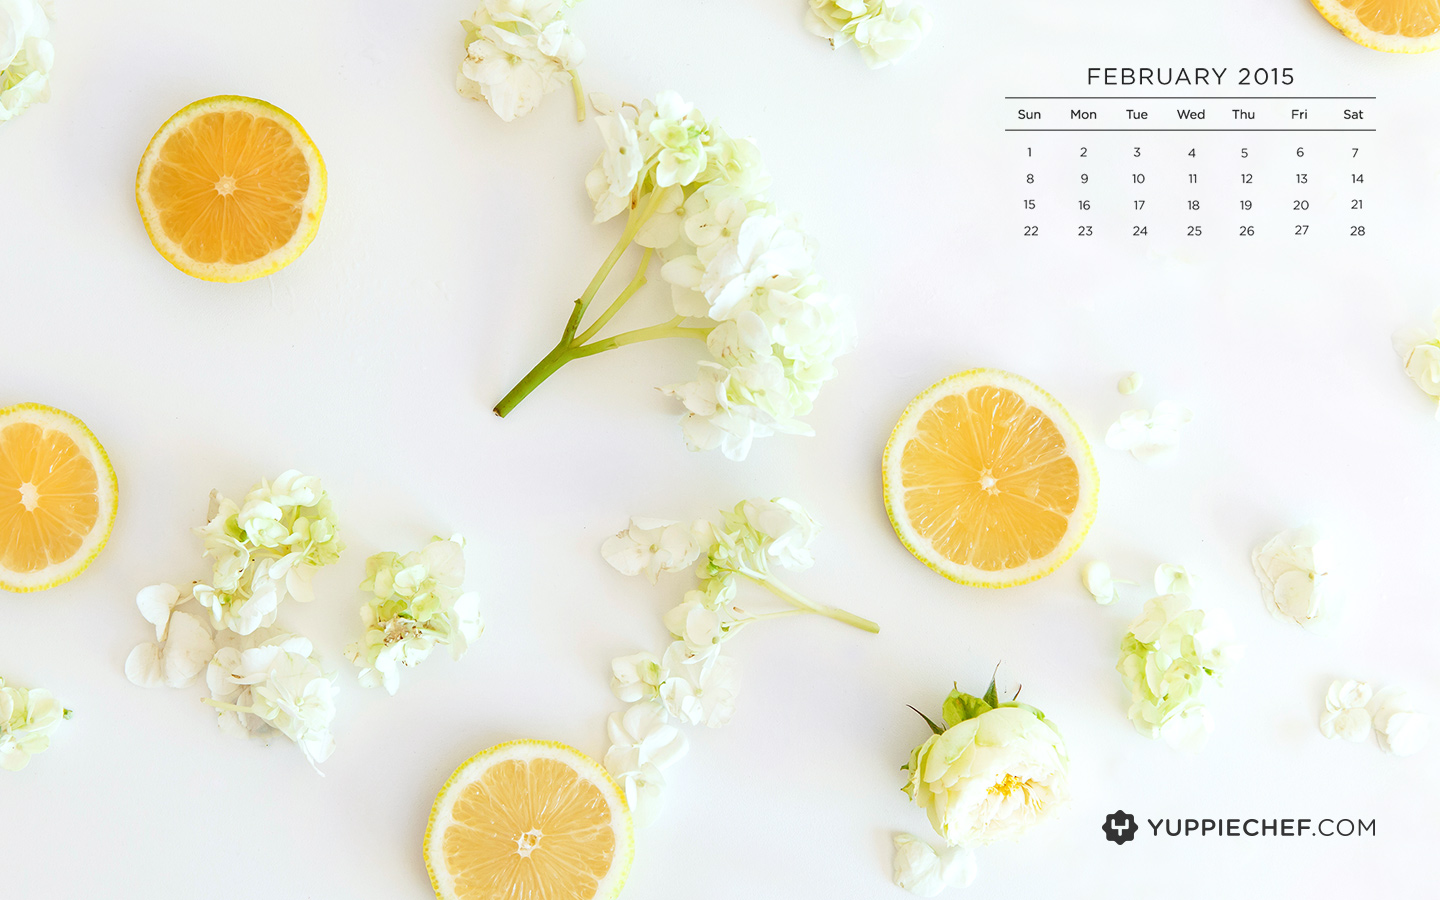 Februarys wallpaper a citrus squeeze for your screen 1440x900